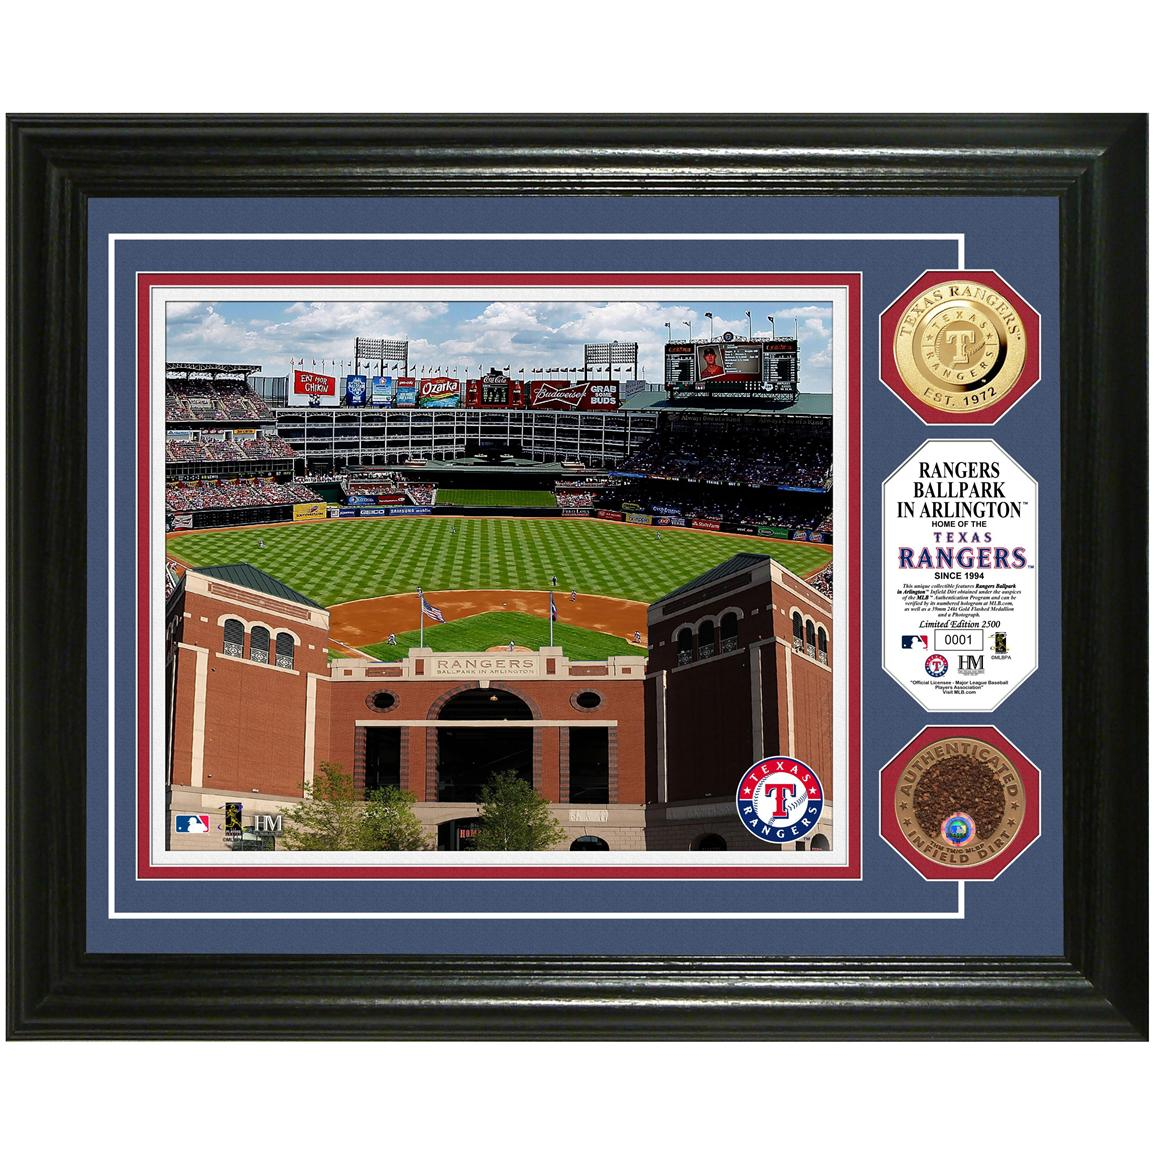 Ranger's Ballpark Game-used Dirt Coin Photo Mint from Highland Mint®